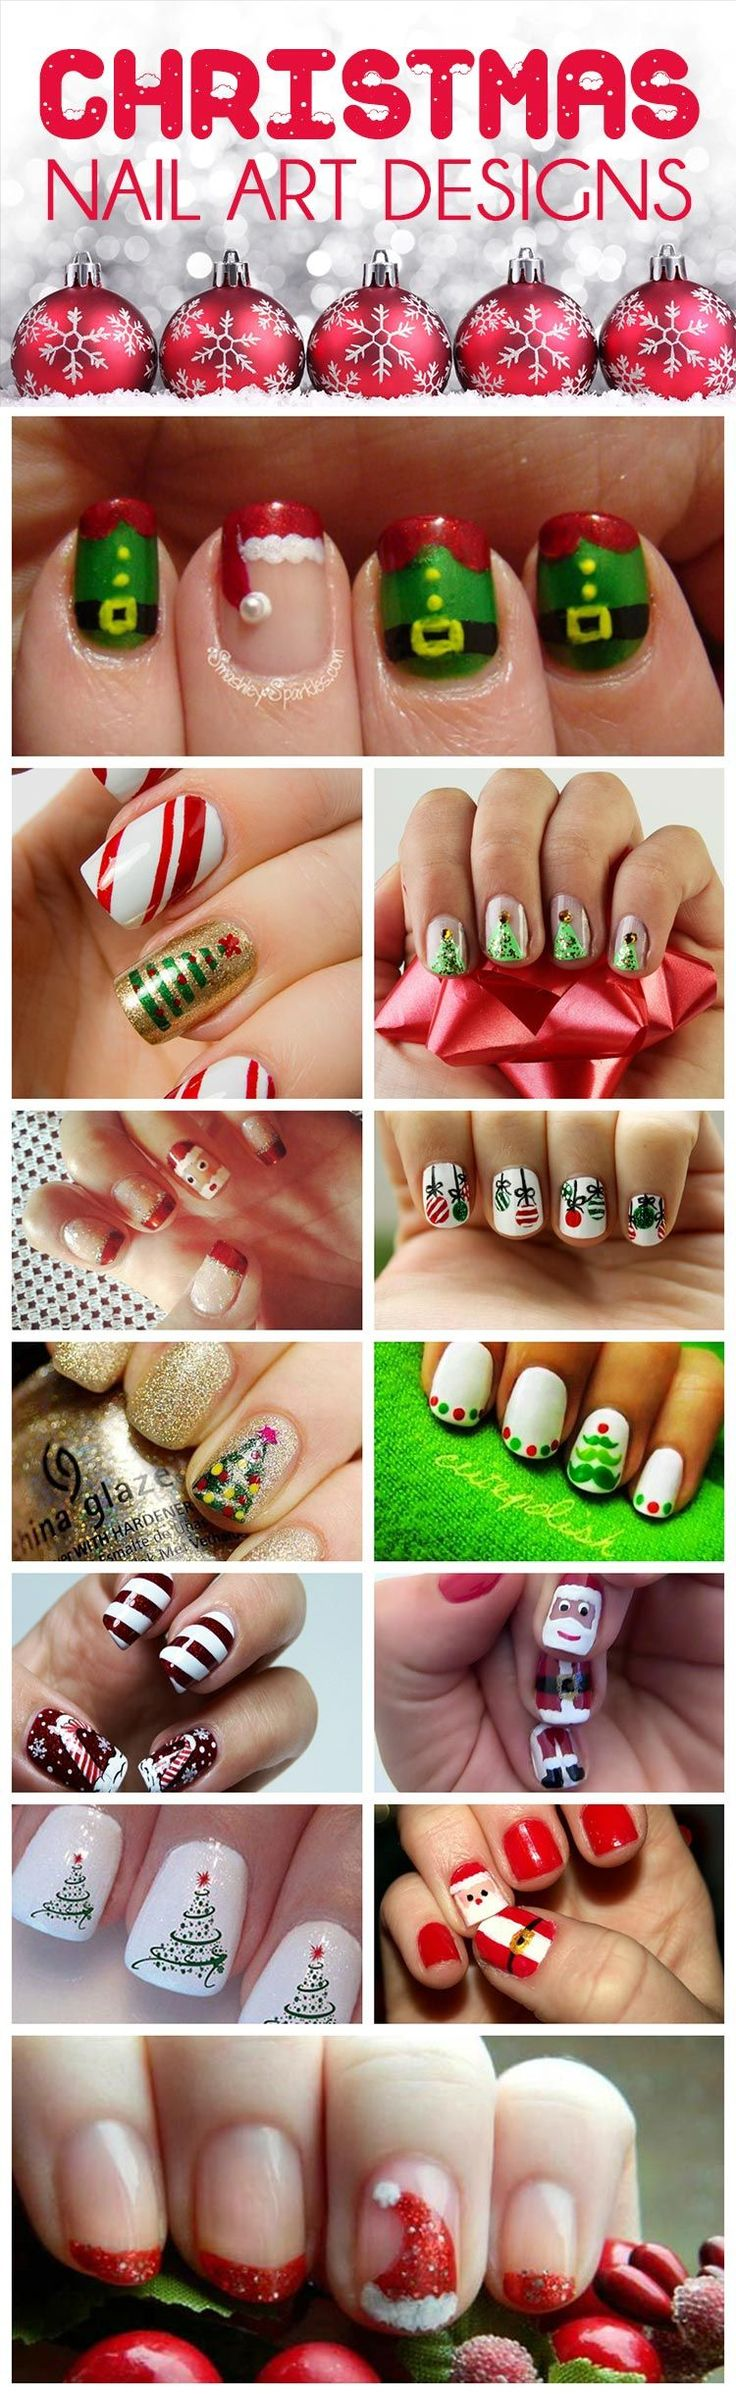 133 best Nail Art images on Pinterest | Nail design, Cute nails and ...